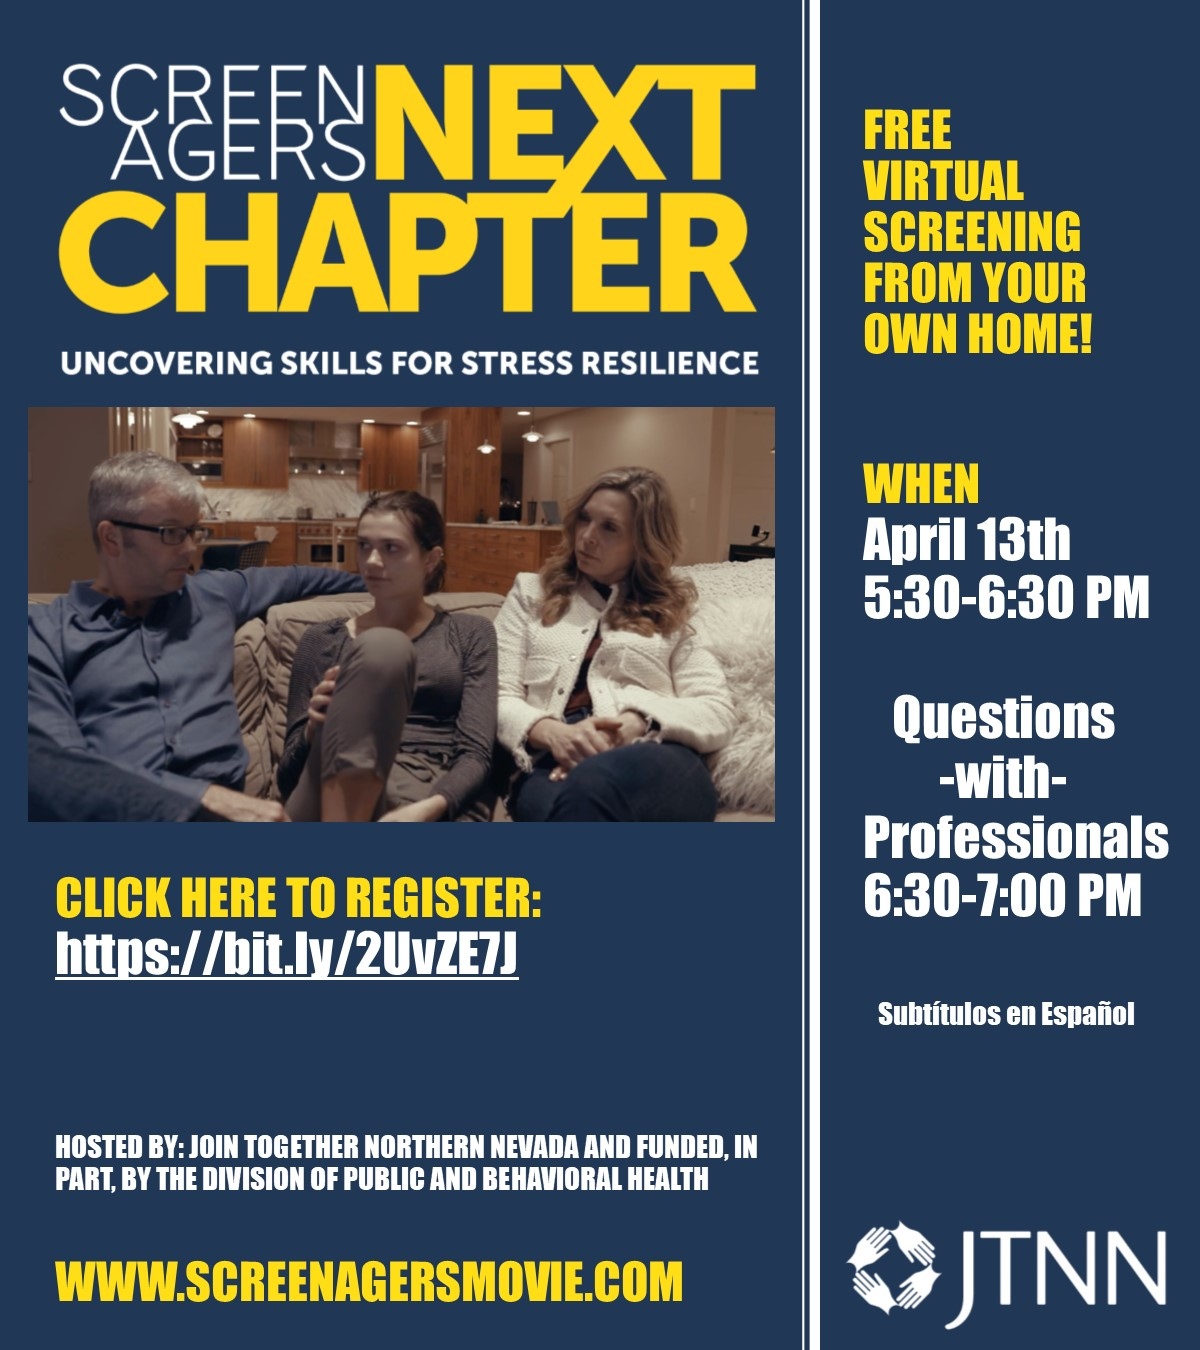 Screenagers: The Next Chapter, FREE VIRTUAL Screening! @ Your Own Home!